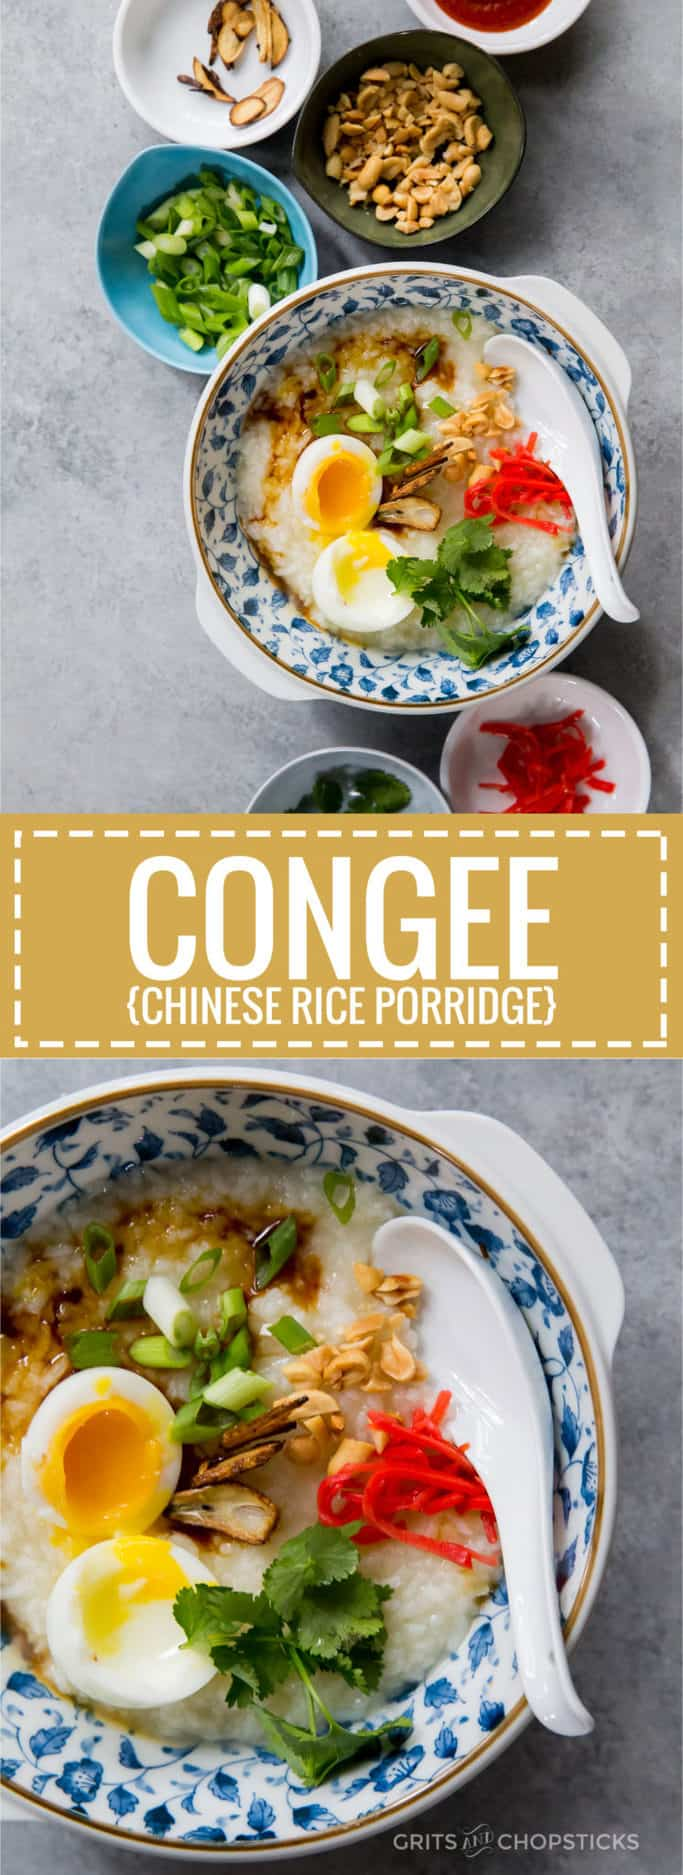 Congee, or Chinese rice porridge, is a simple, hearty meal that can have lots of variety in its toppings